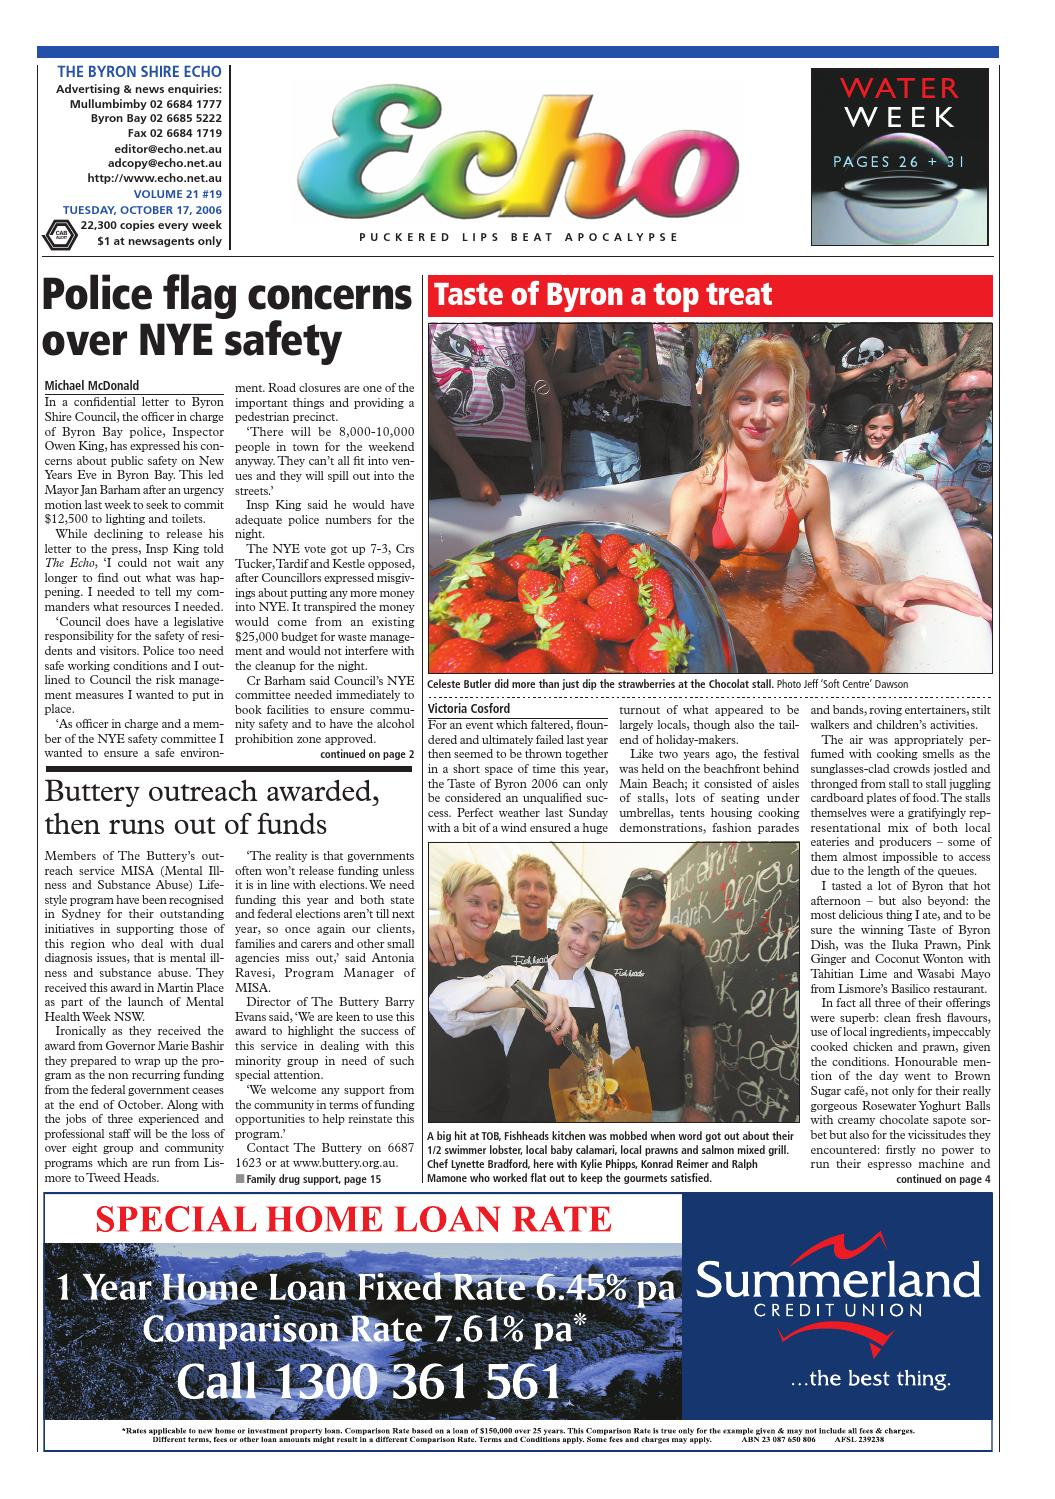 298ef6712695 Byron Shire Echo – Issue 21.19 – 17 10 2006 by Echo Publications - issuu